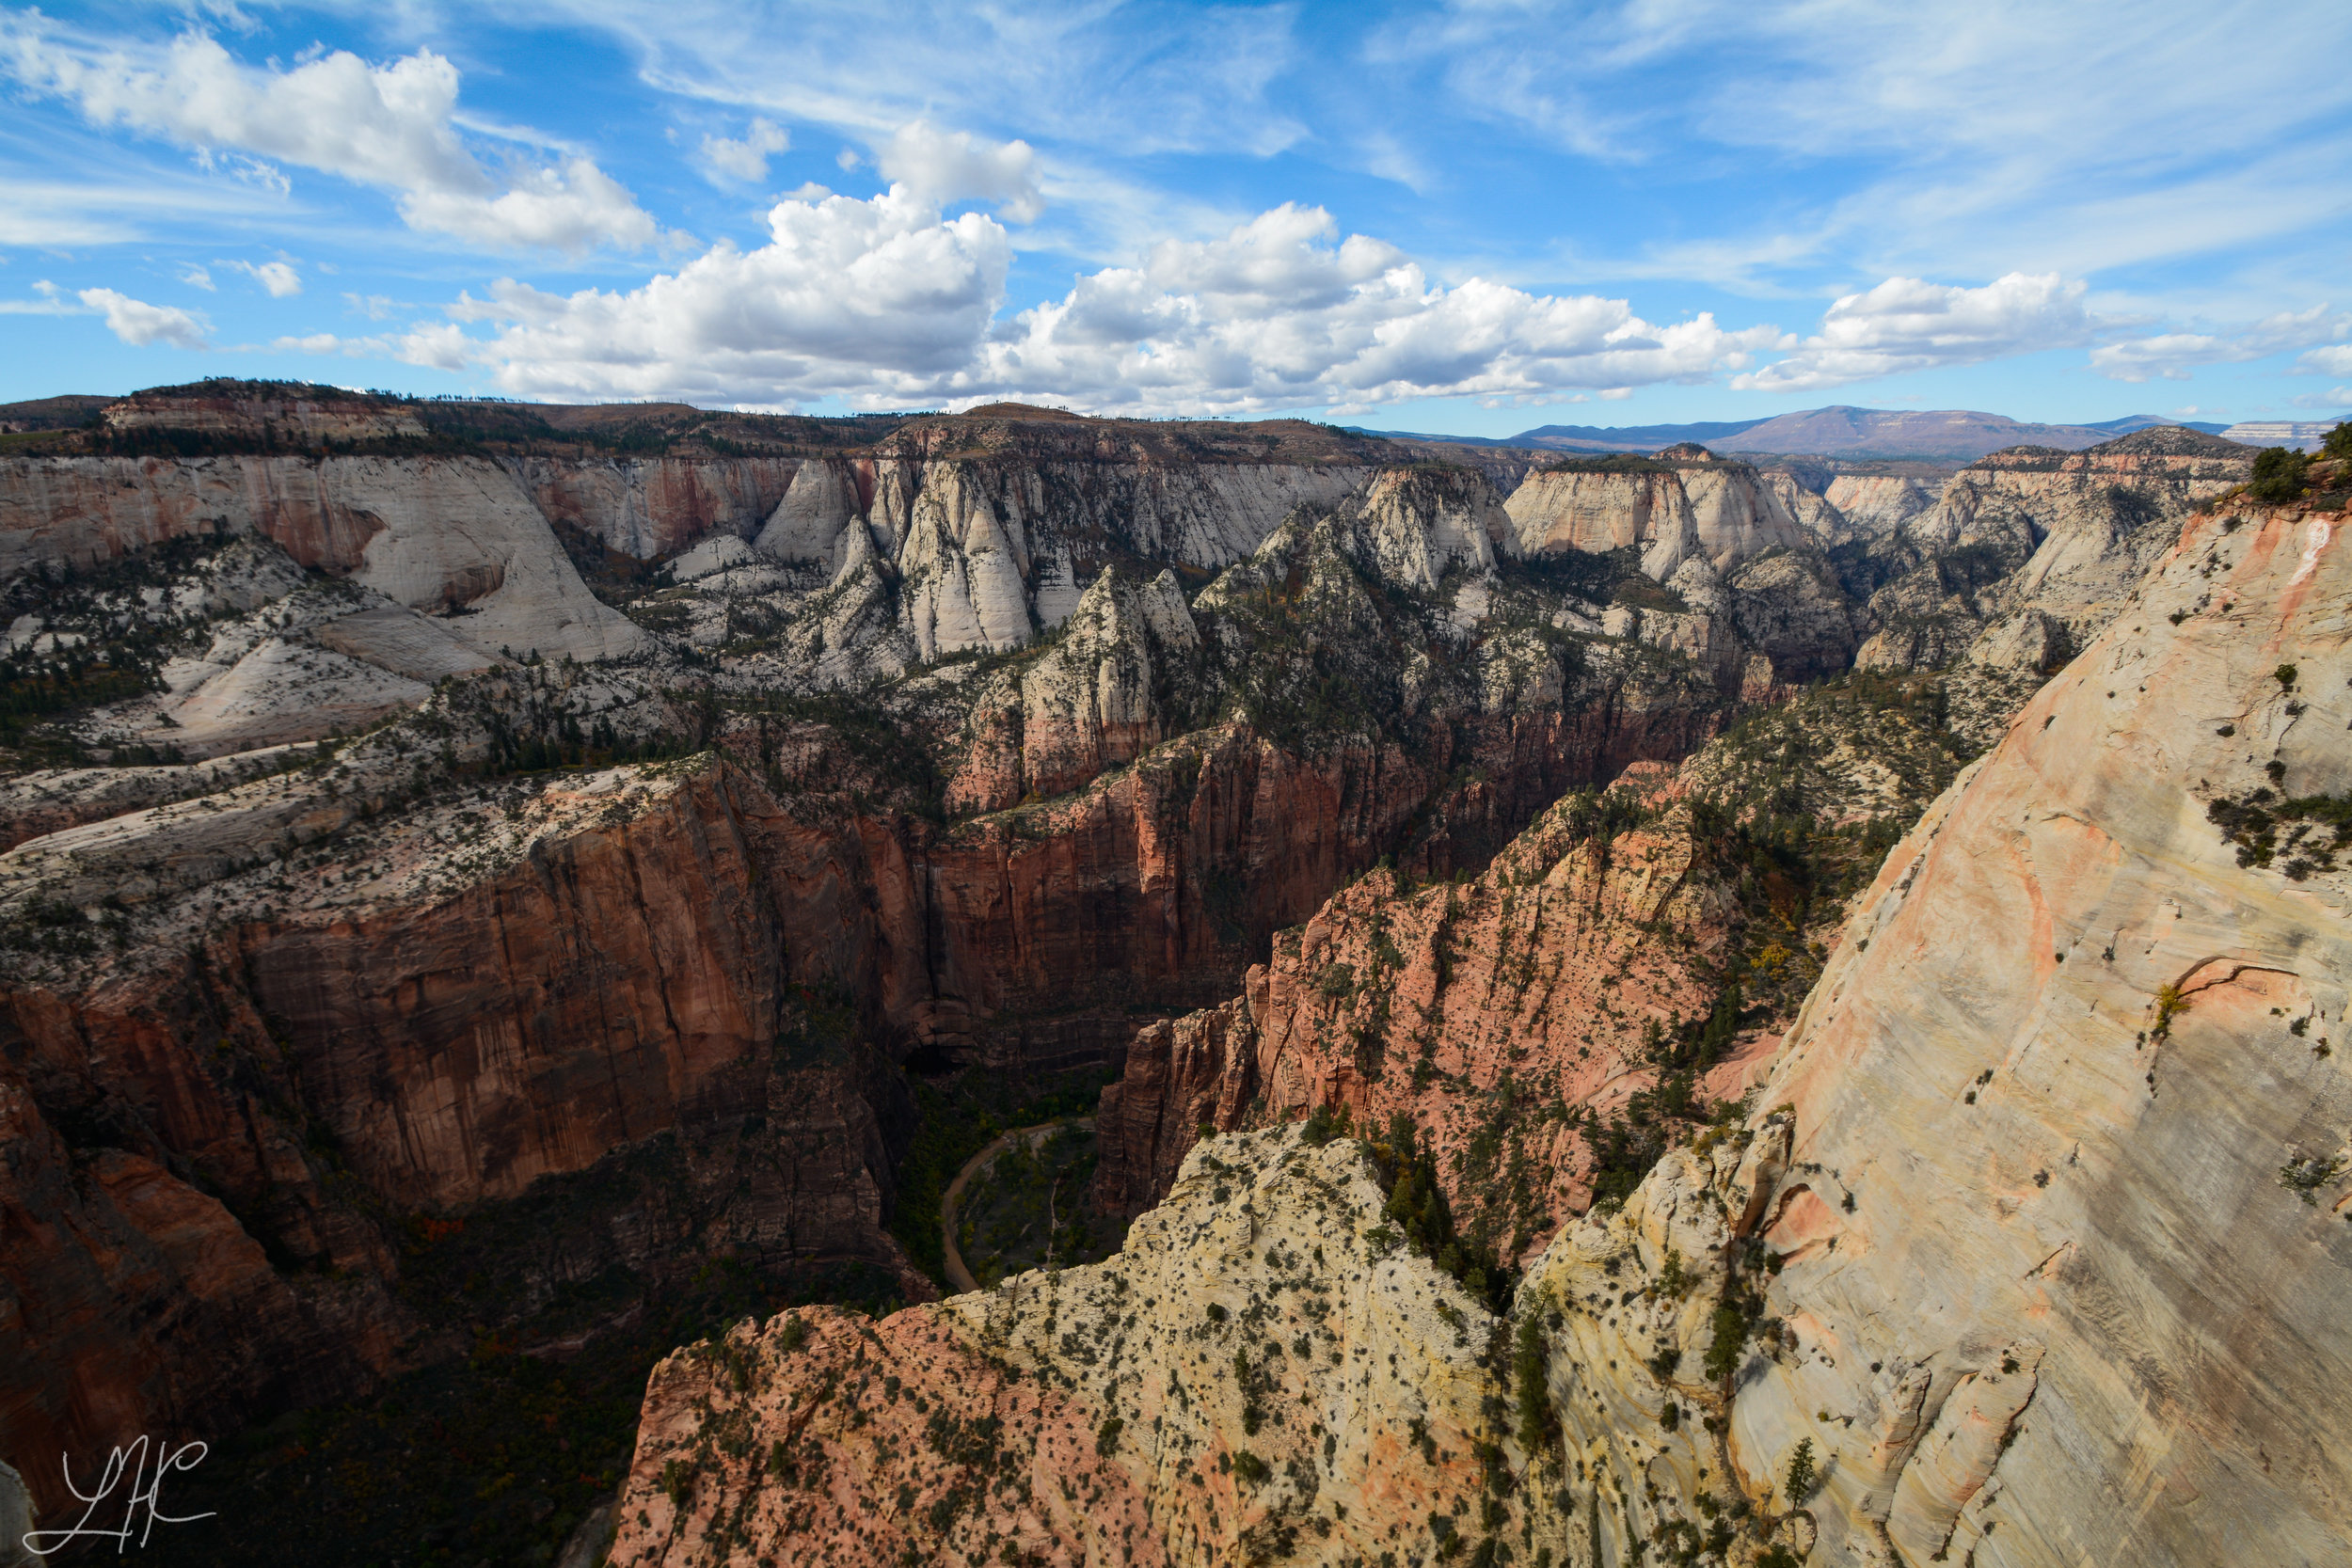 Looking NW from Observation Point, Zion National Park